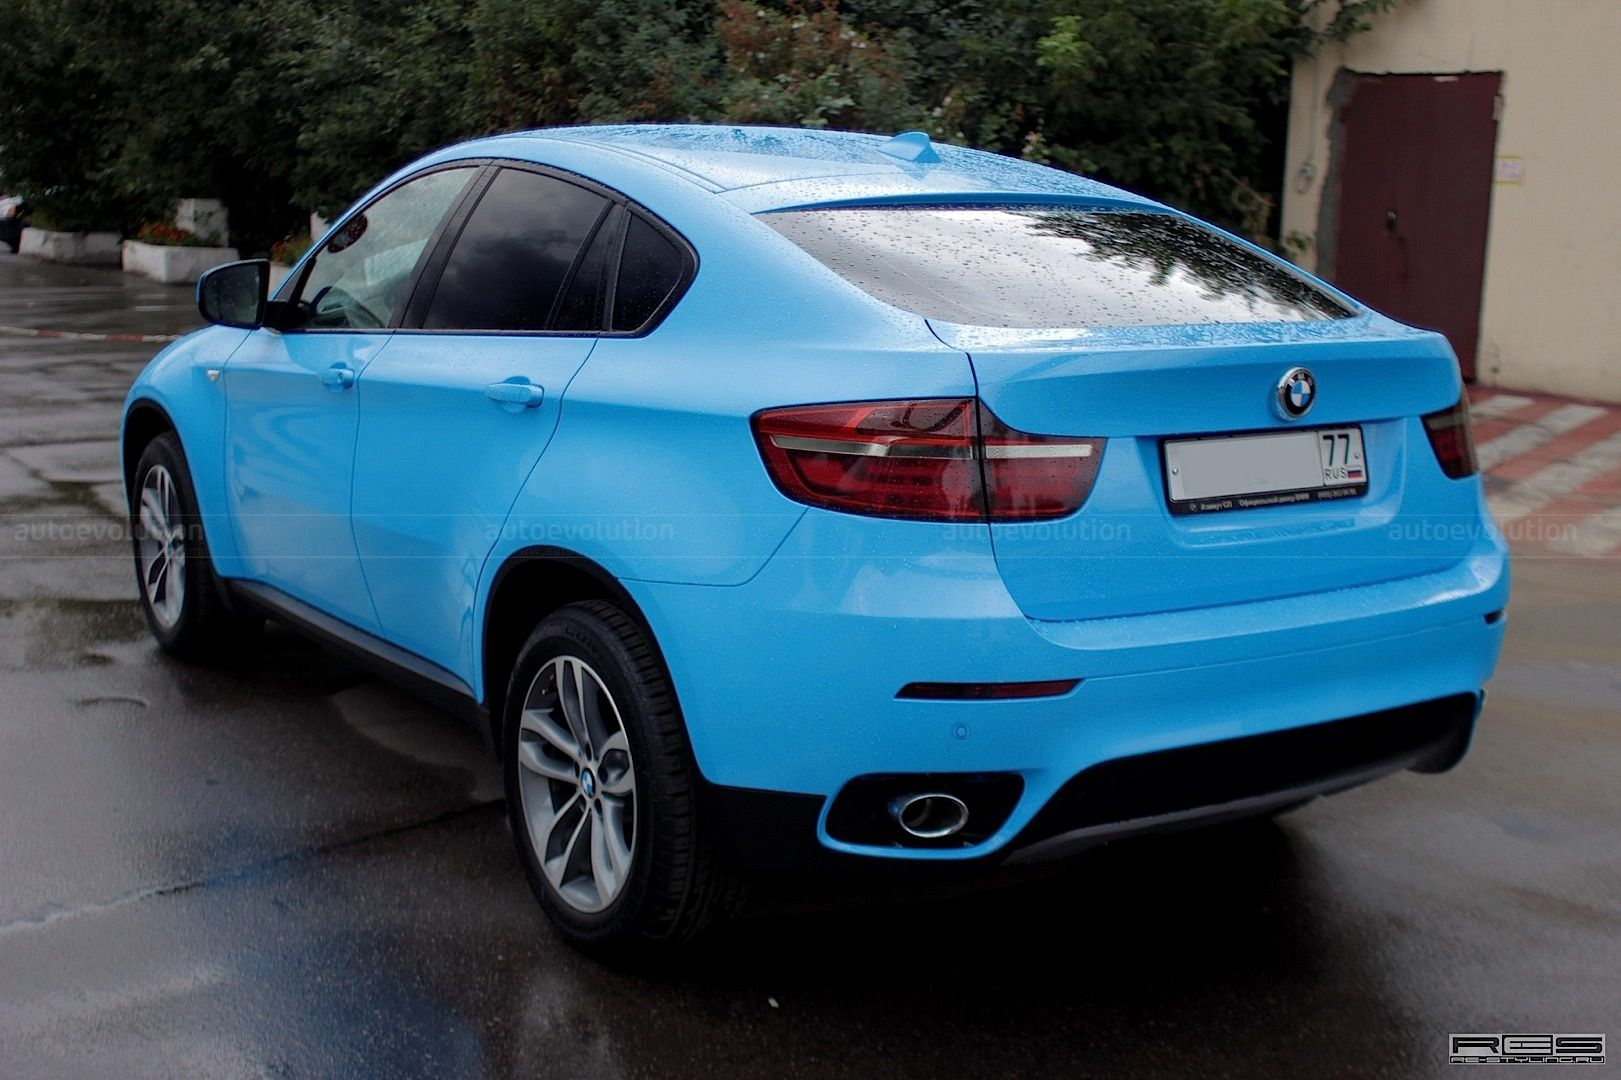 smurf blue bmw x6 dream cars wish list pinterest bmw x6 blue and bmw. Black Bedroom Furniture Sets. Home Design Ideas